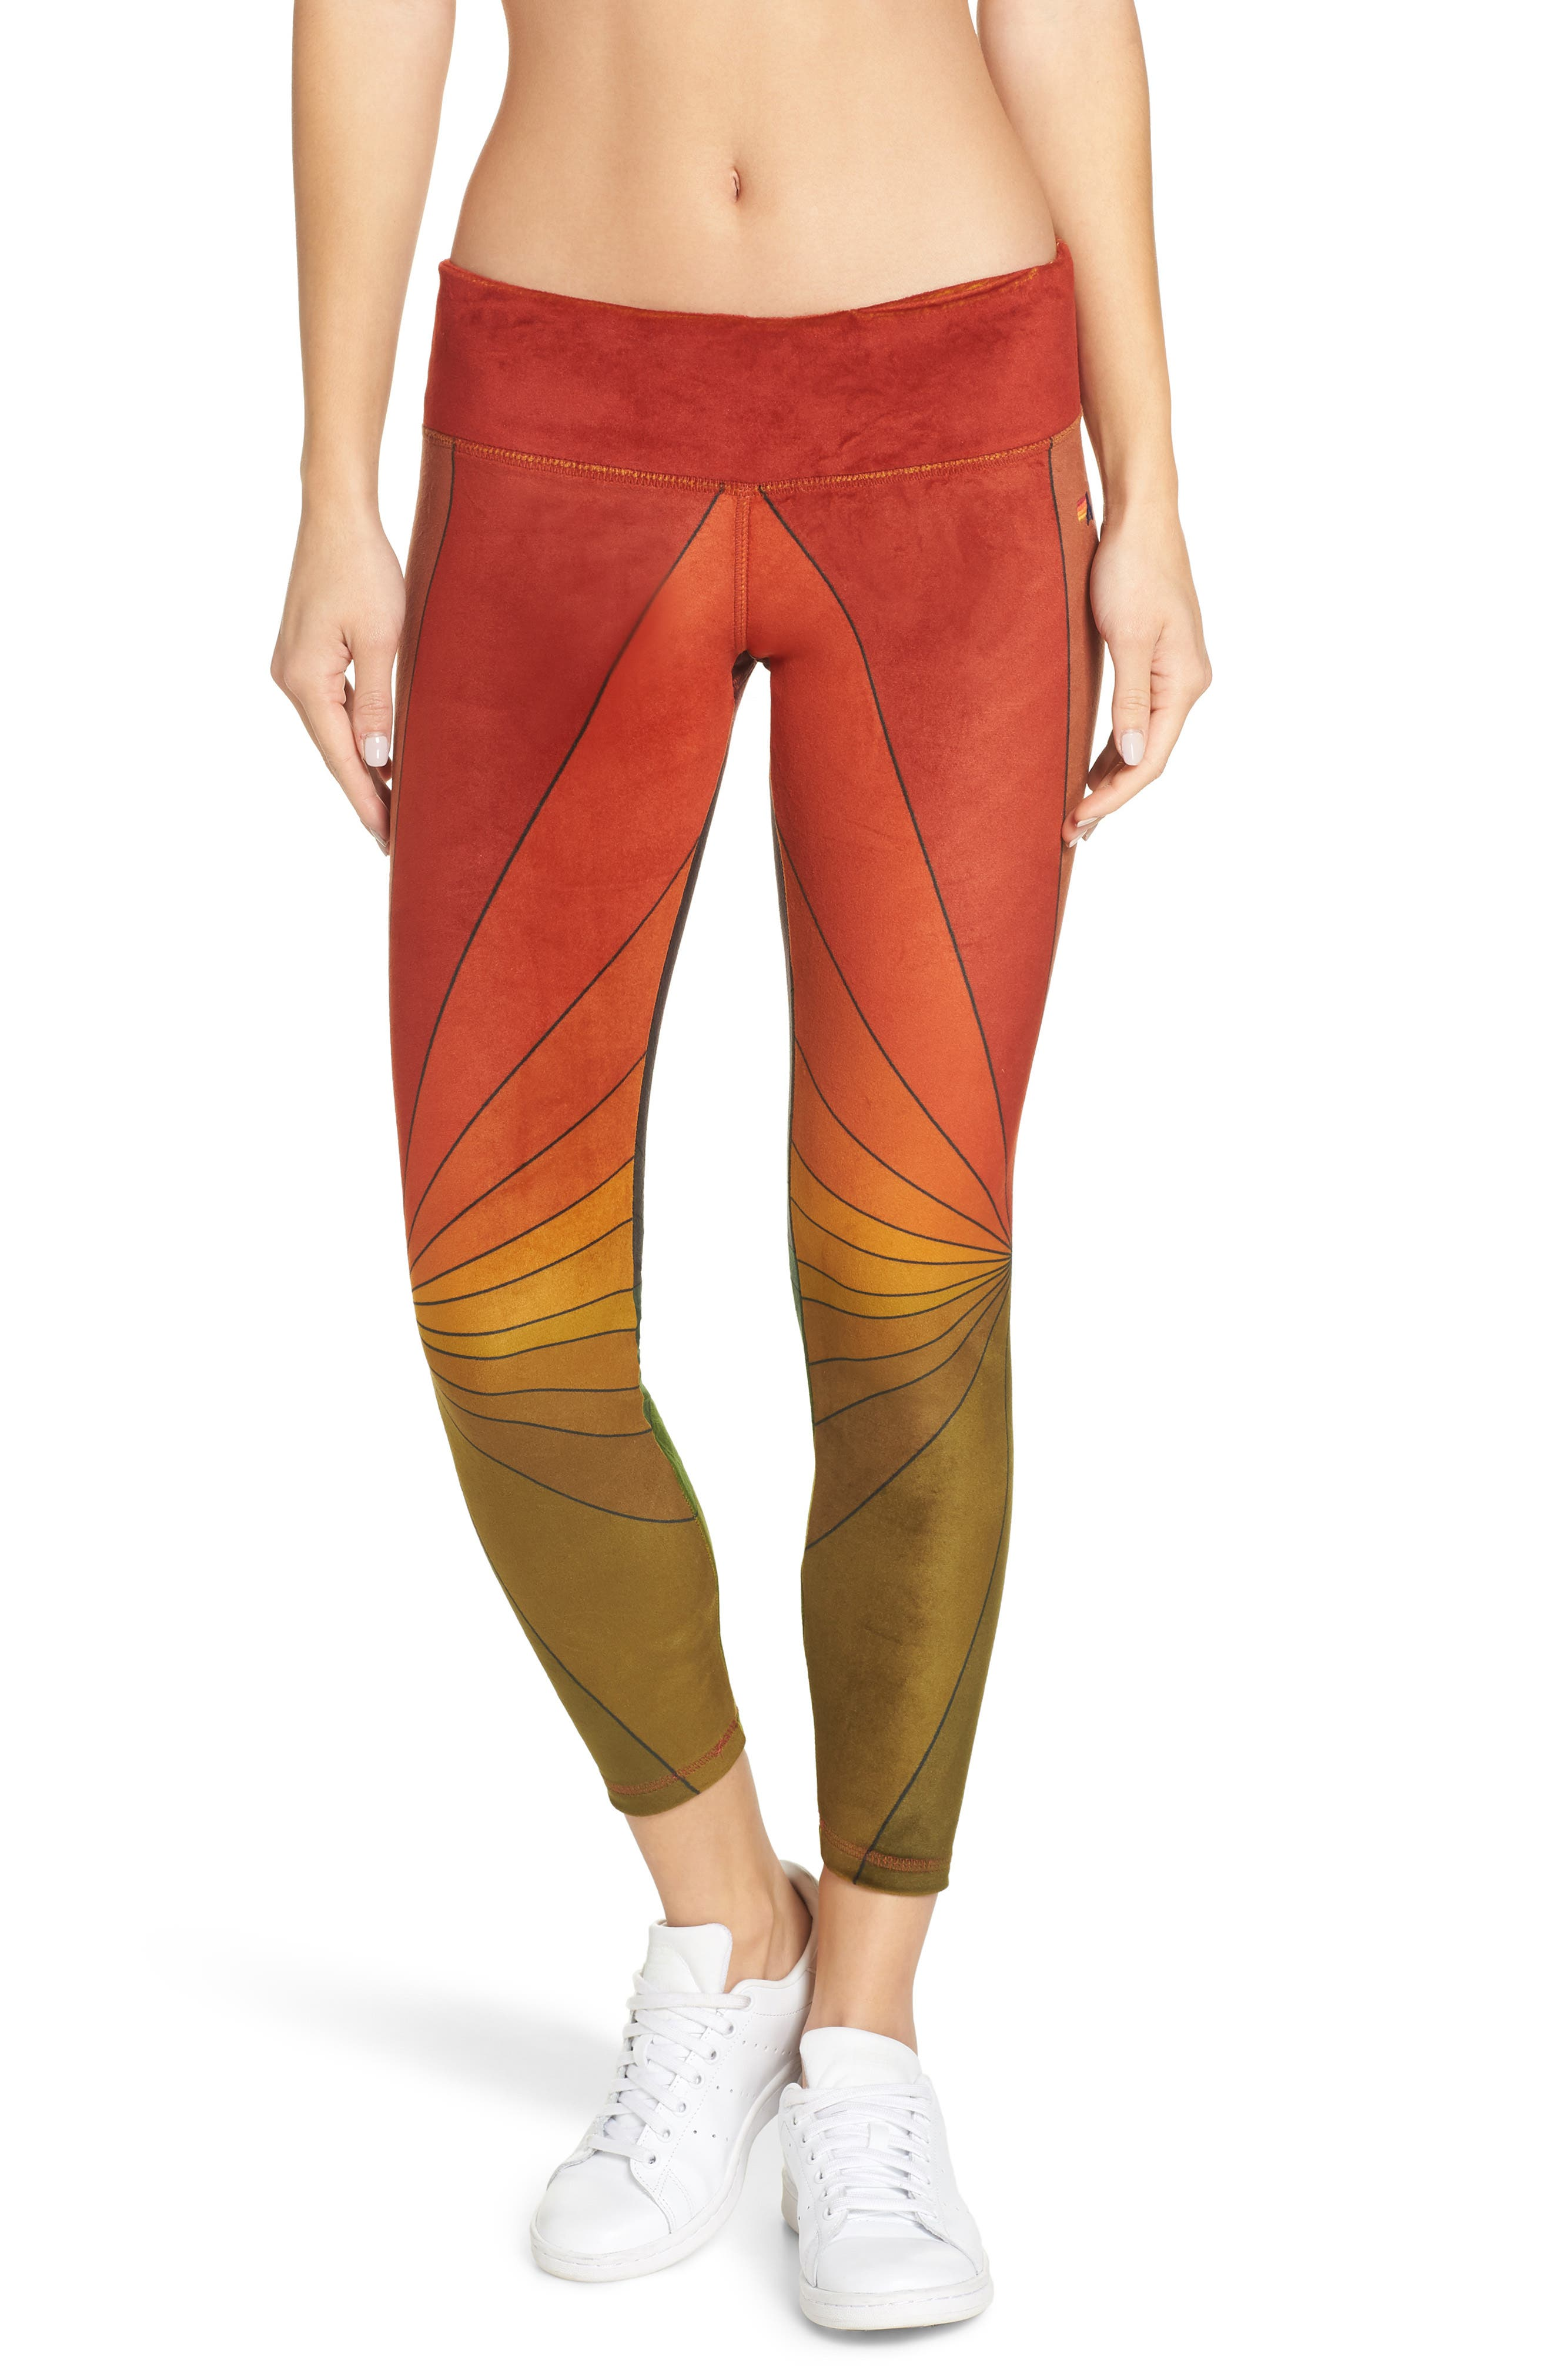 AVIATOR NATION Rainbow Sunburst Velour Leggings, Main, color, 600